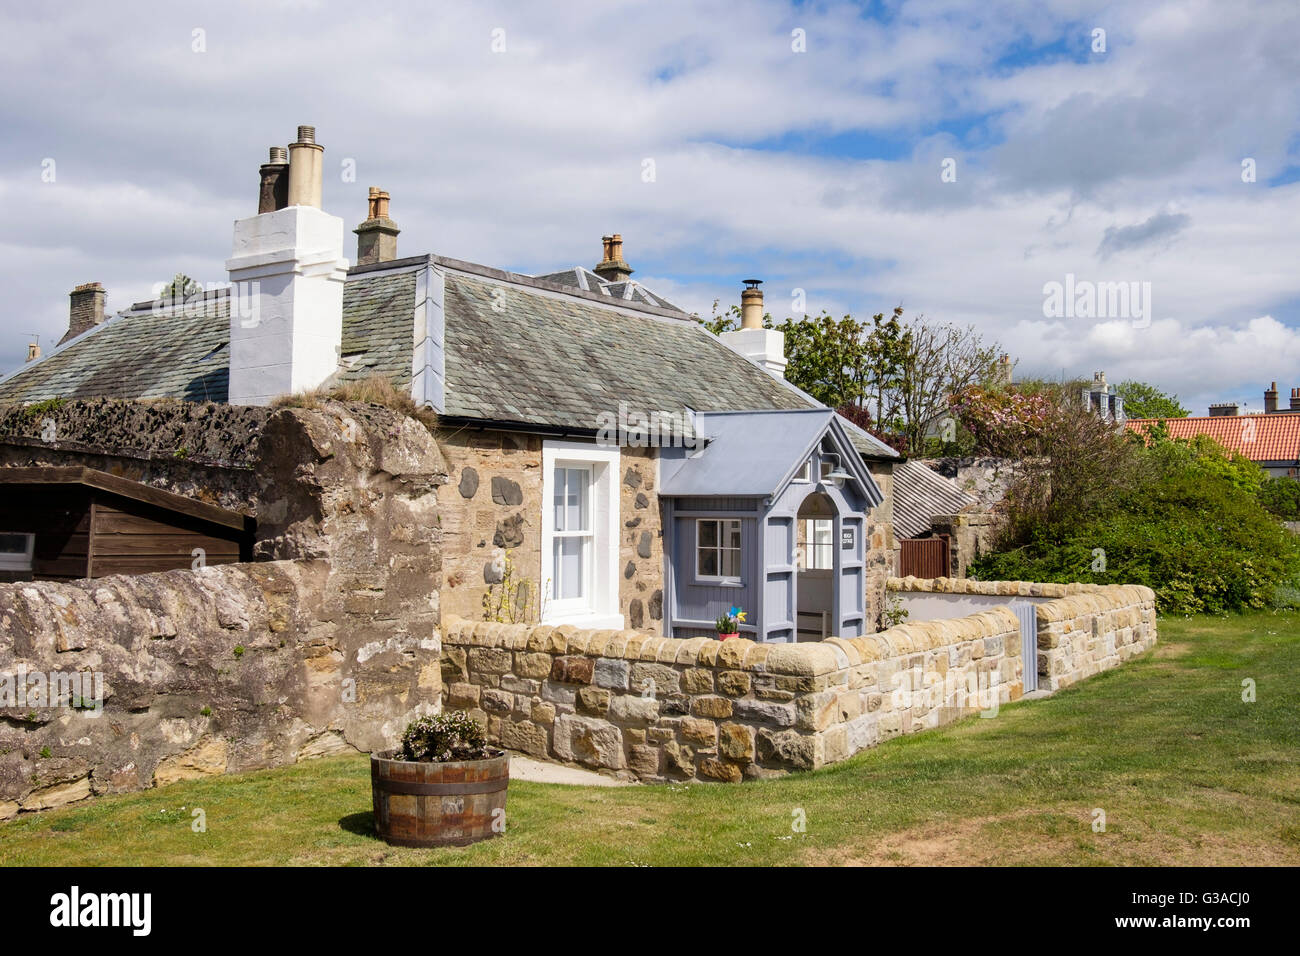 Quaint stone cottage with wooden porch and small walled front garden on seafront in village of Elie and Earlsferry - Stock Image